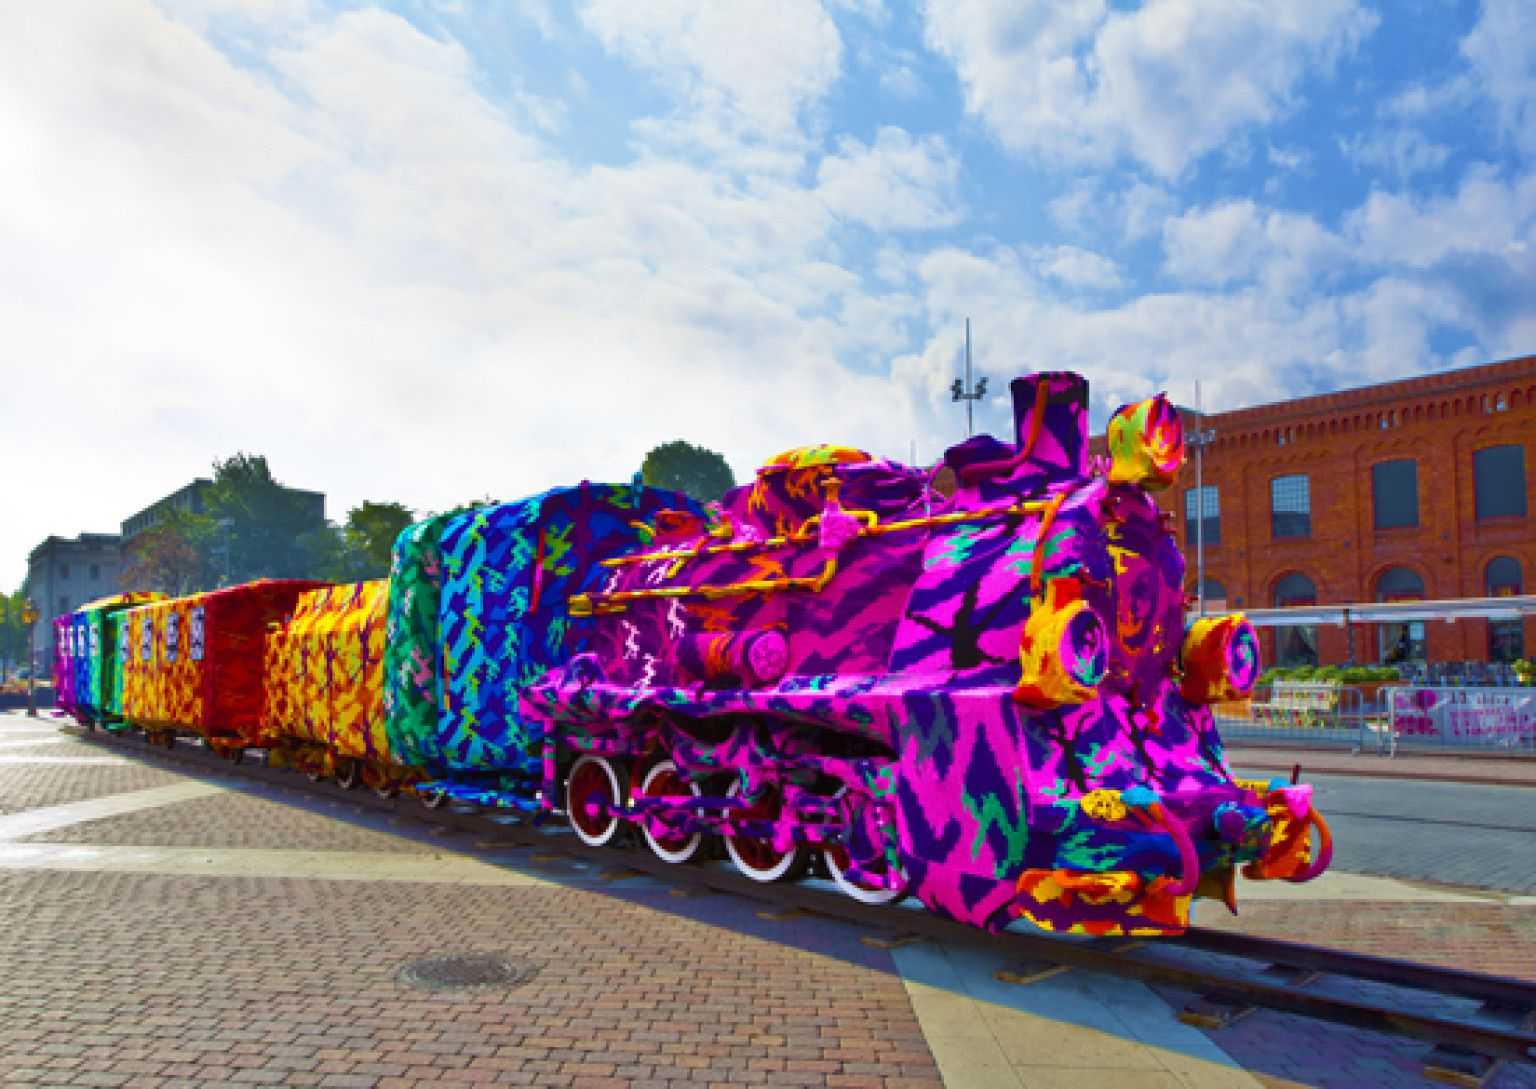 The Train That Stands Still | Olek